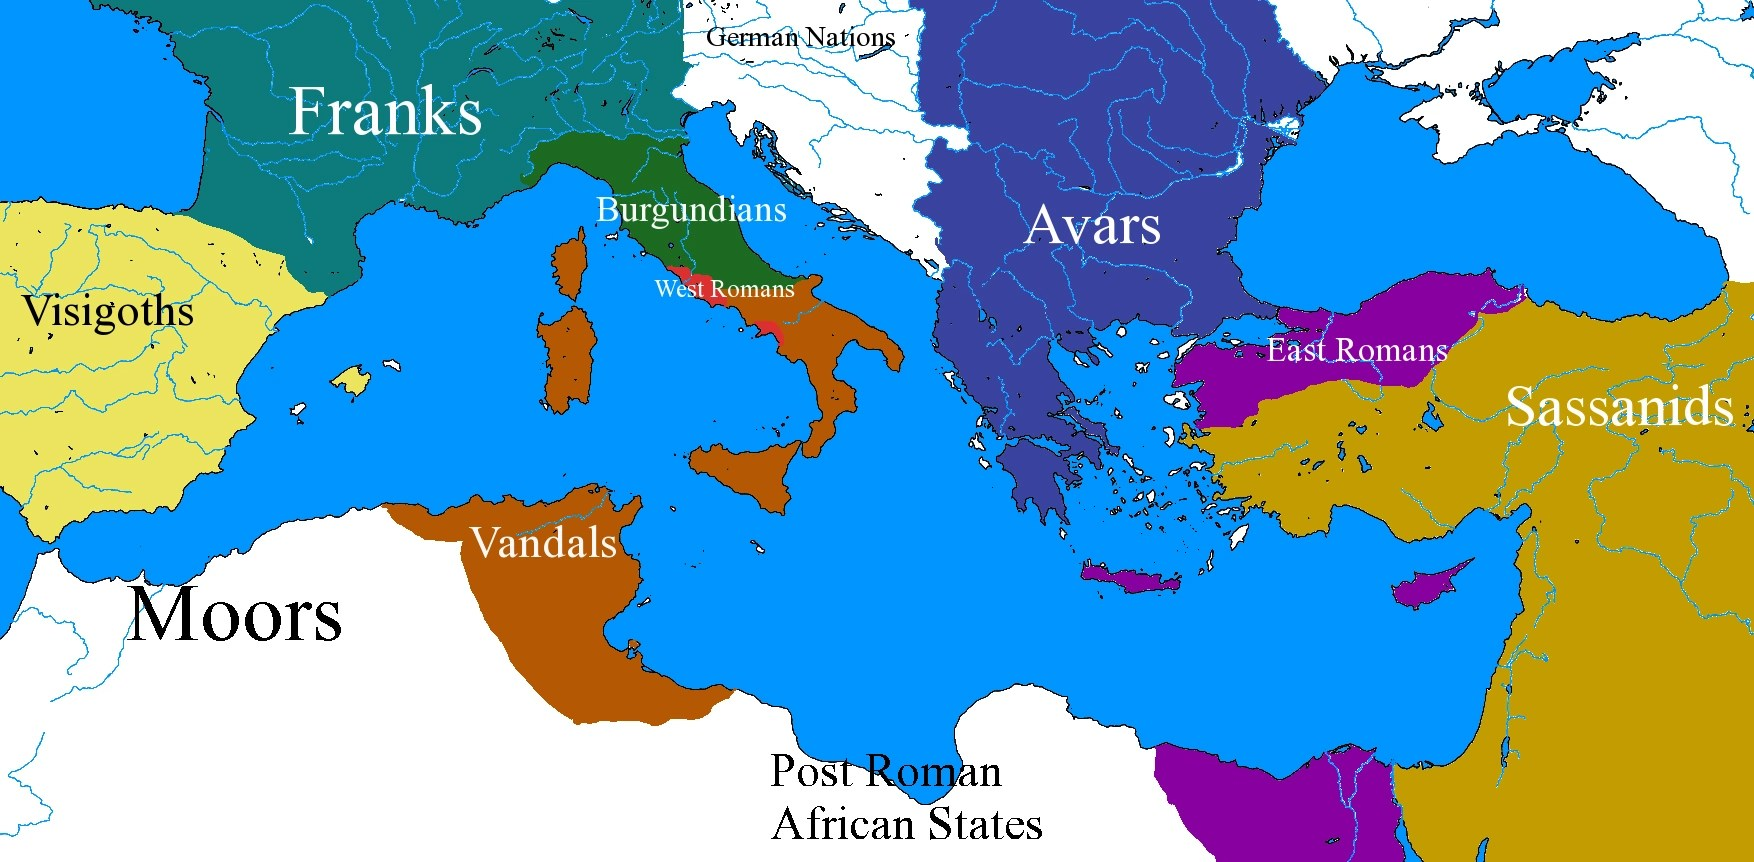 20 Eastern Roman Empire Timeline Pictures And Ideas On Meta Networks